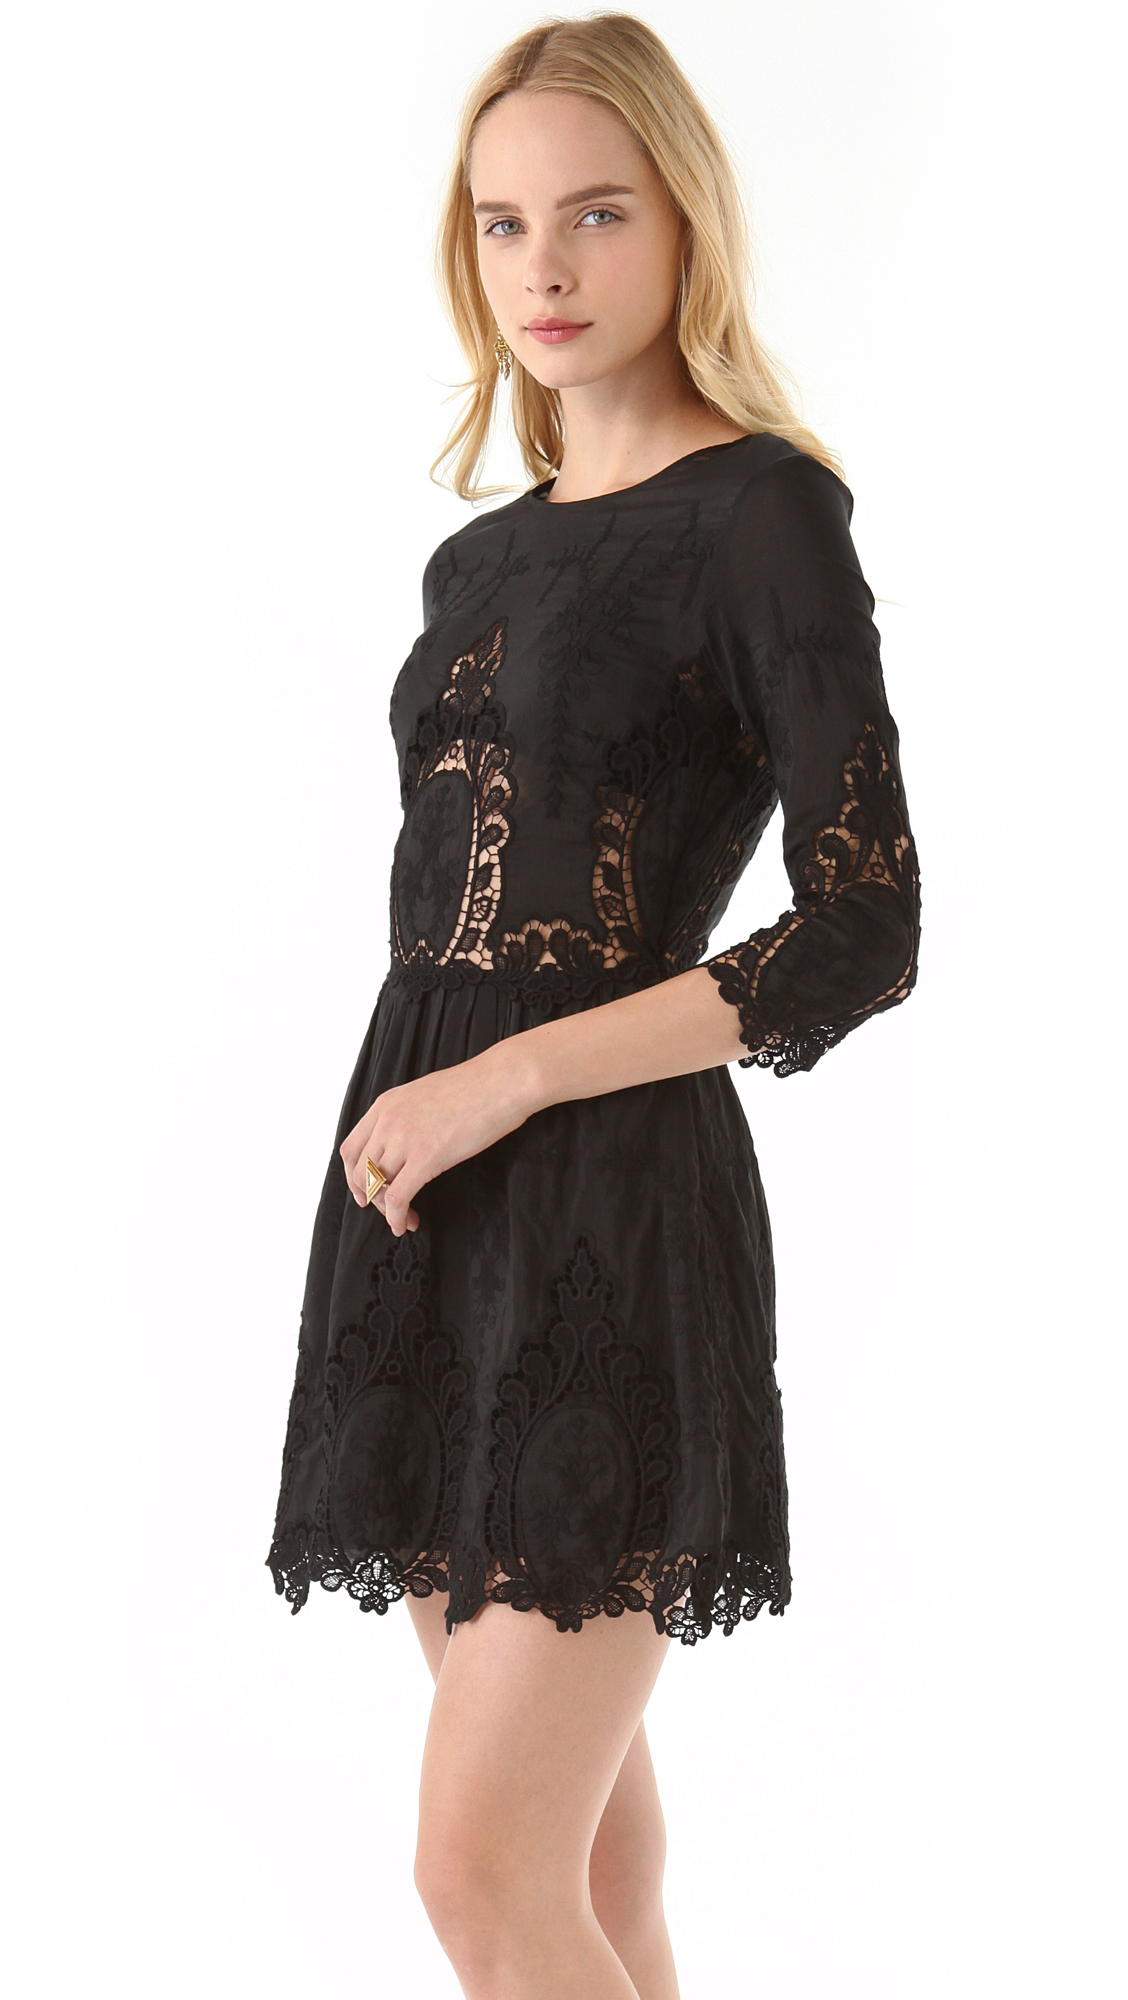 dolce vita valentina dress with lace in black lyst. Black Bedroom Furniture Sets. Home Design Ideas